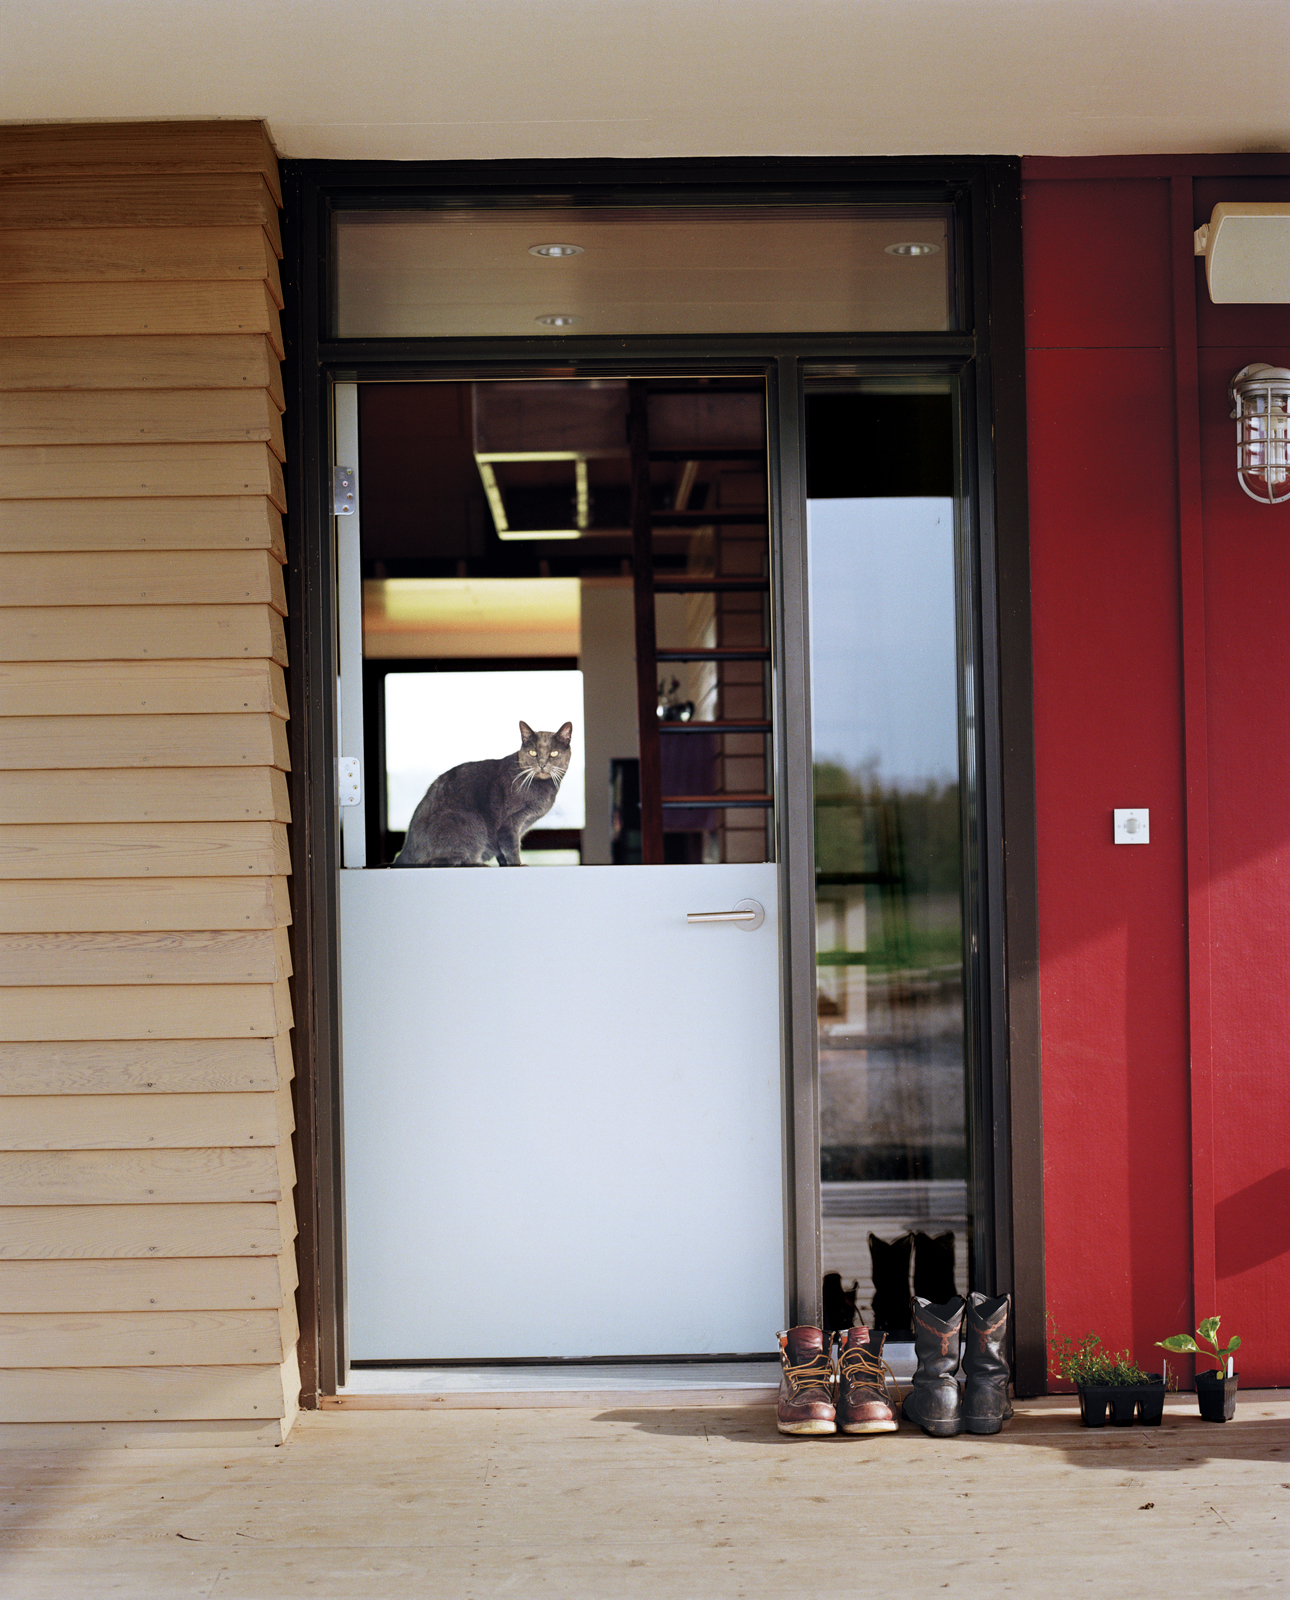 Cultivating the land keeps the Moumings in a frequent rotation in and out of the house. A Dutch door lets indoor and outdoor tasks flow together easily as they go about their day (with Yuri the cat standing guard).